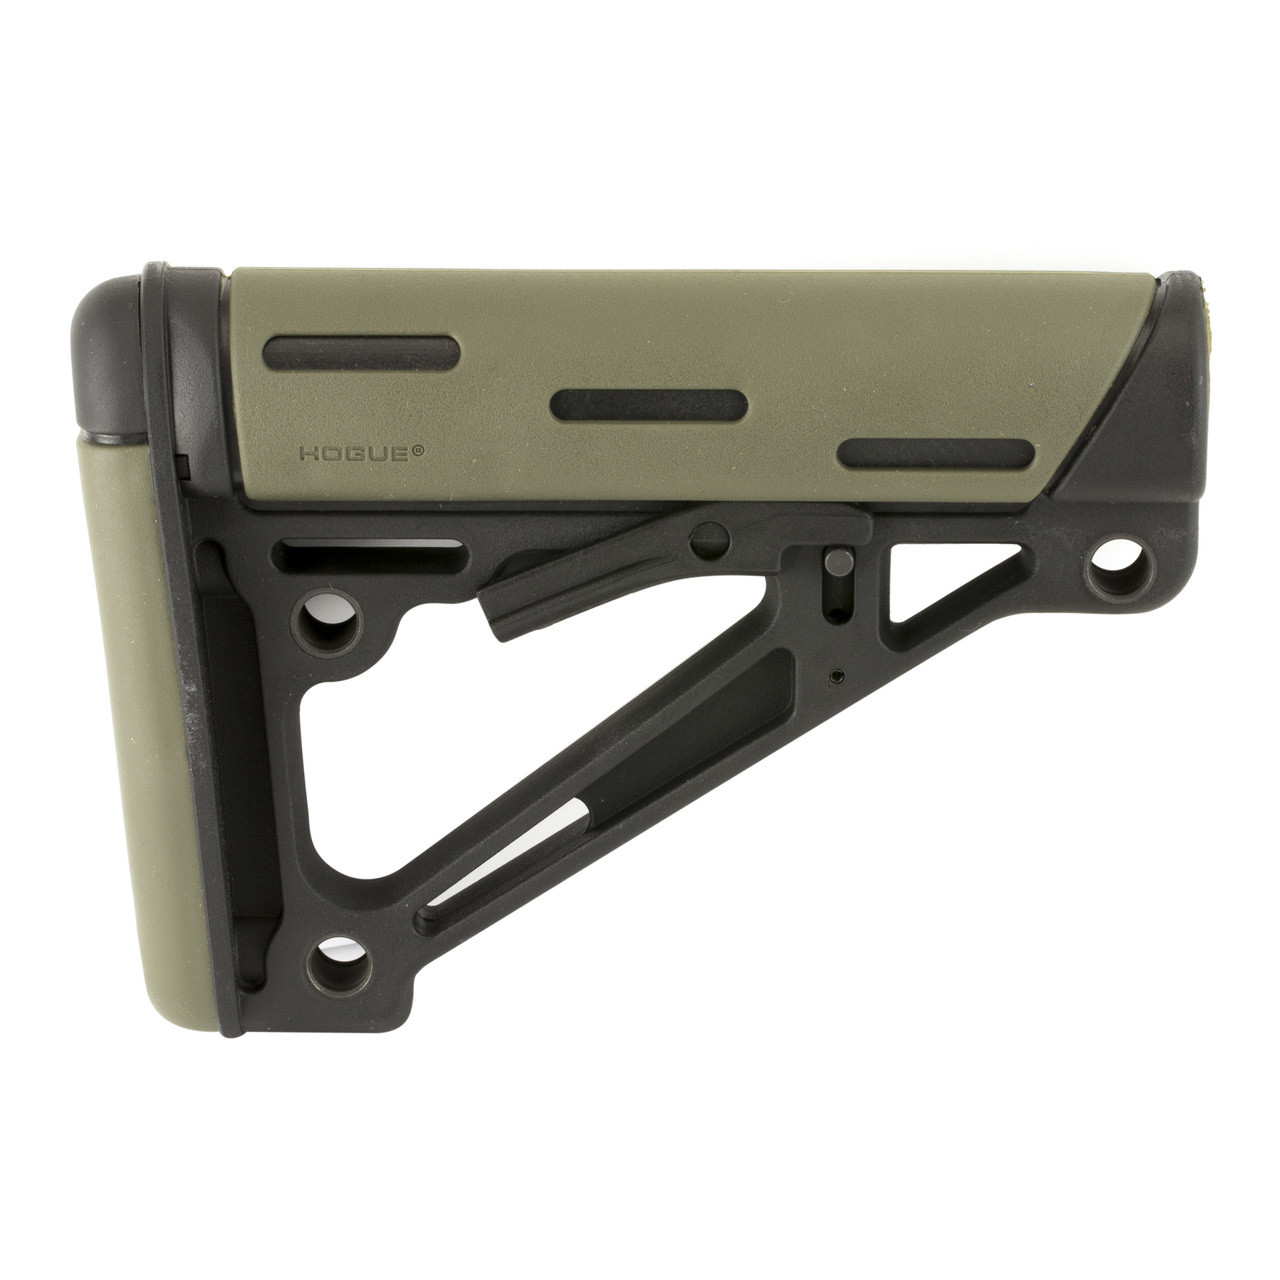 Hogue Grips Stock, Fits Mil-Spec Buffer Tube Only, AR15 6-Position Stock,  OD Green Finish 15240, UPC :743108152409